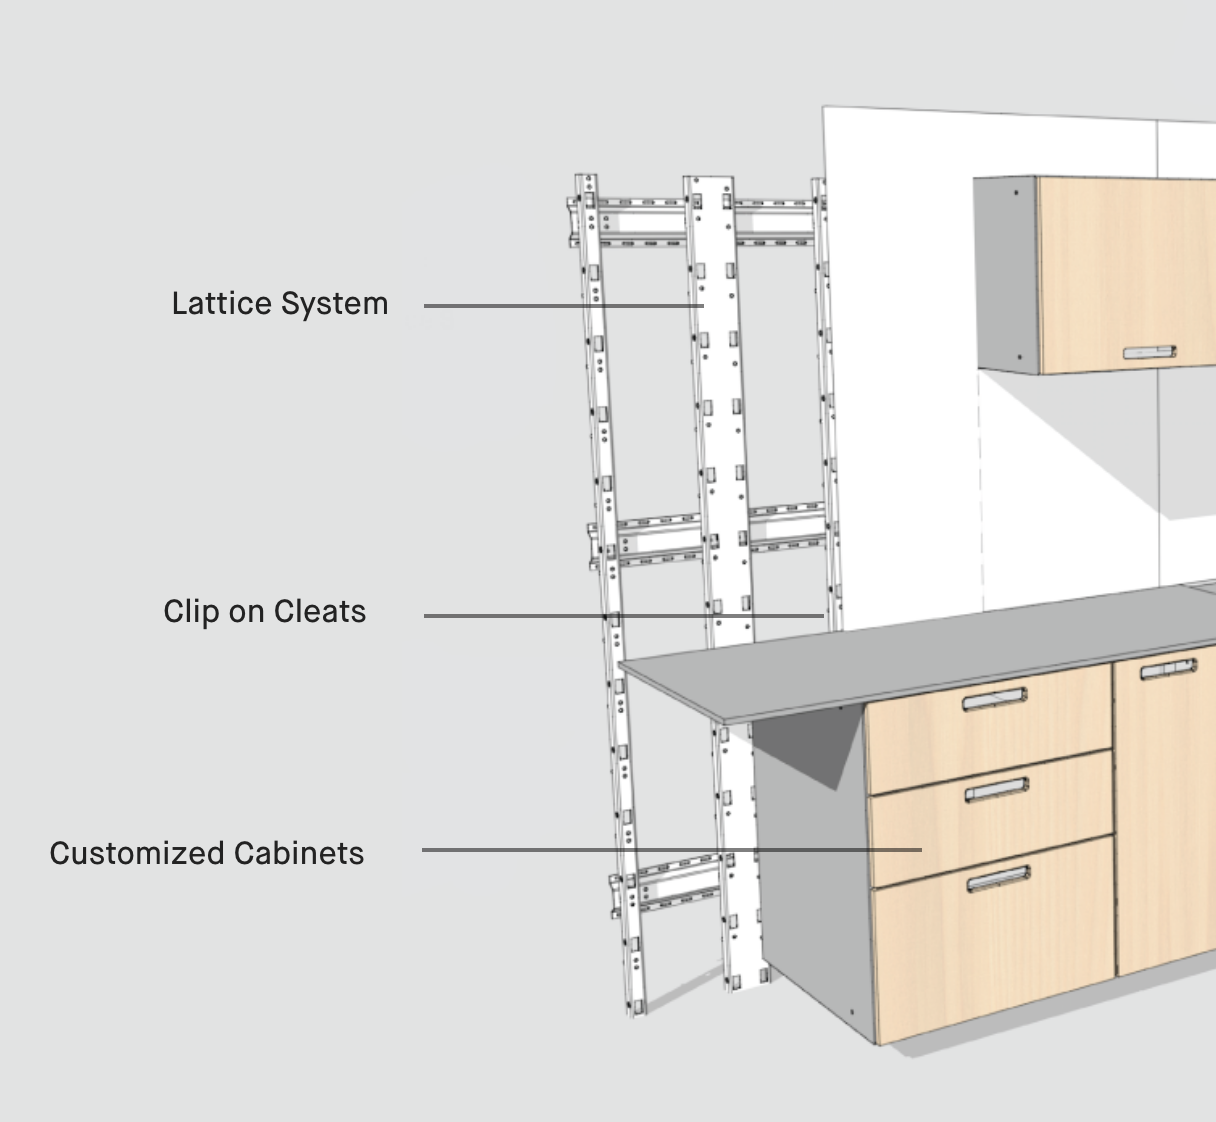 A diagram of the lattice system function that can be viewed in full on the   Bento Build website